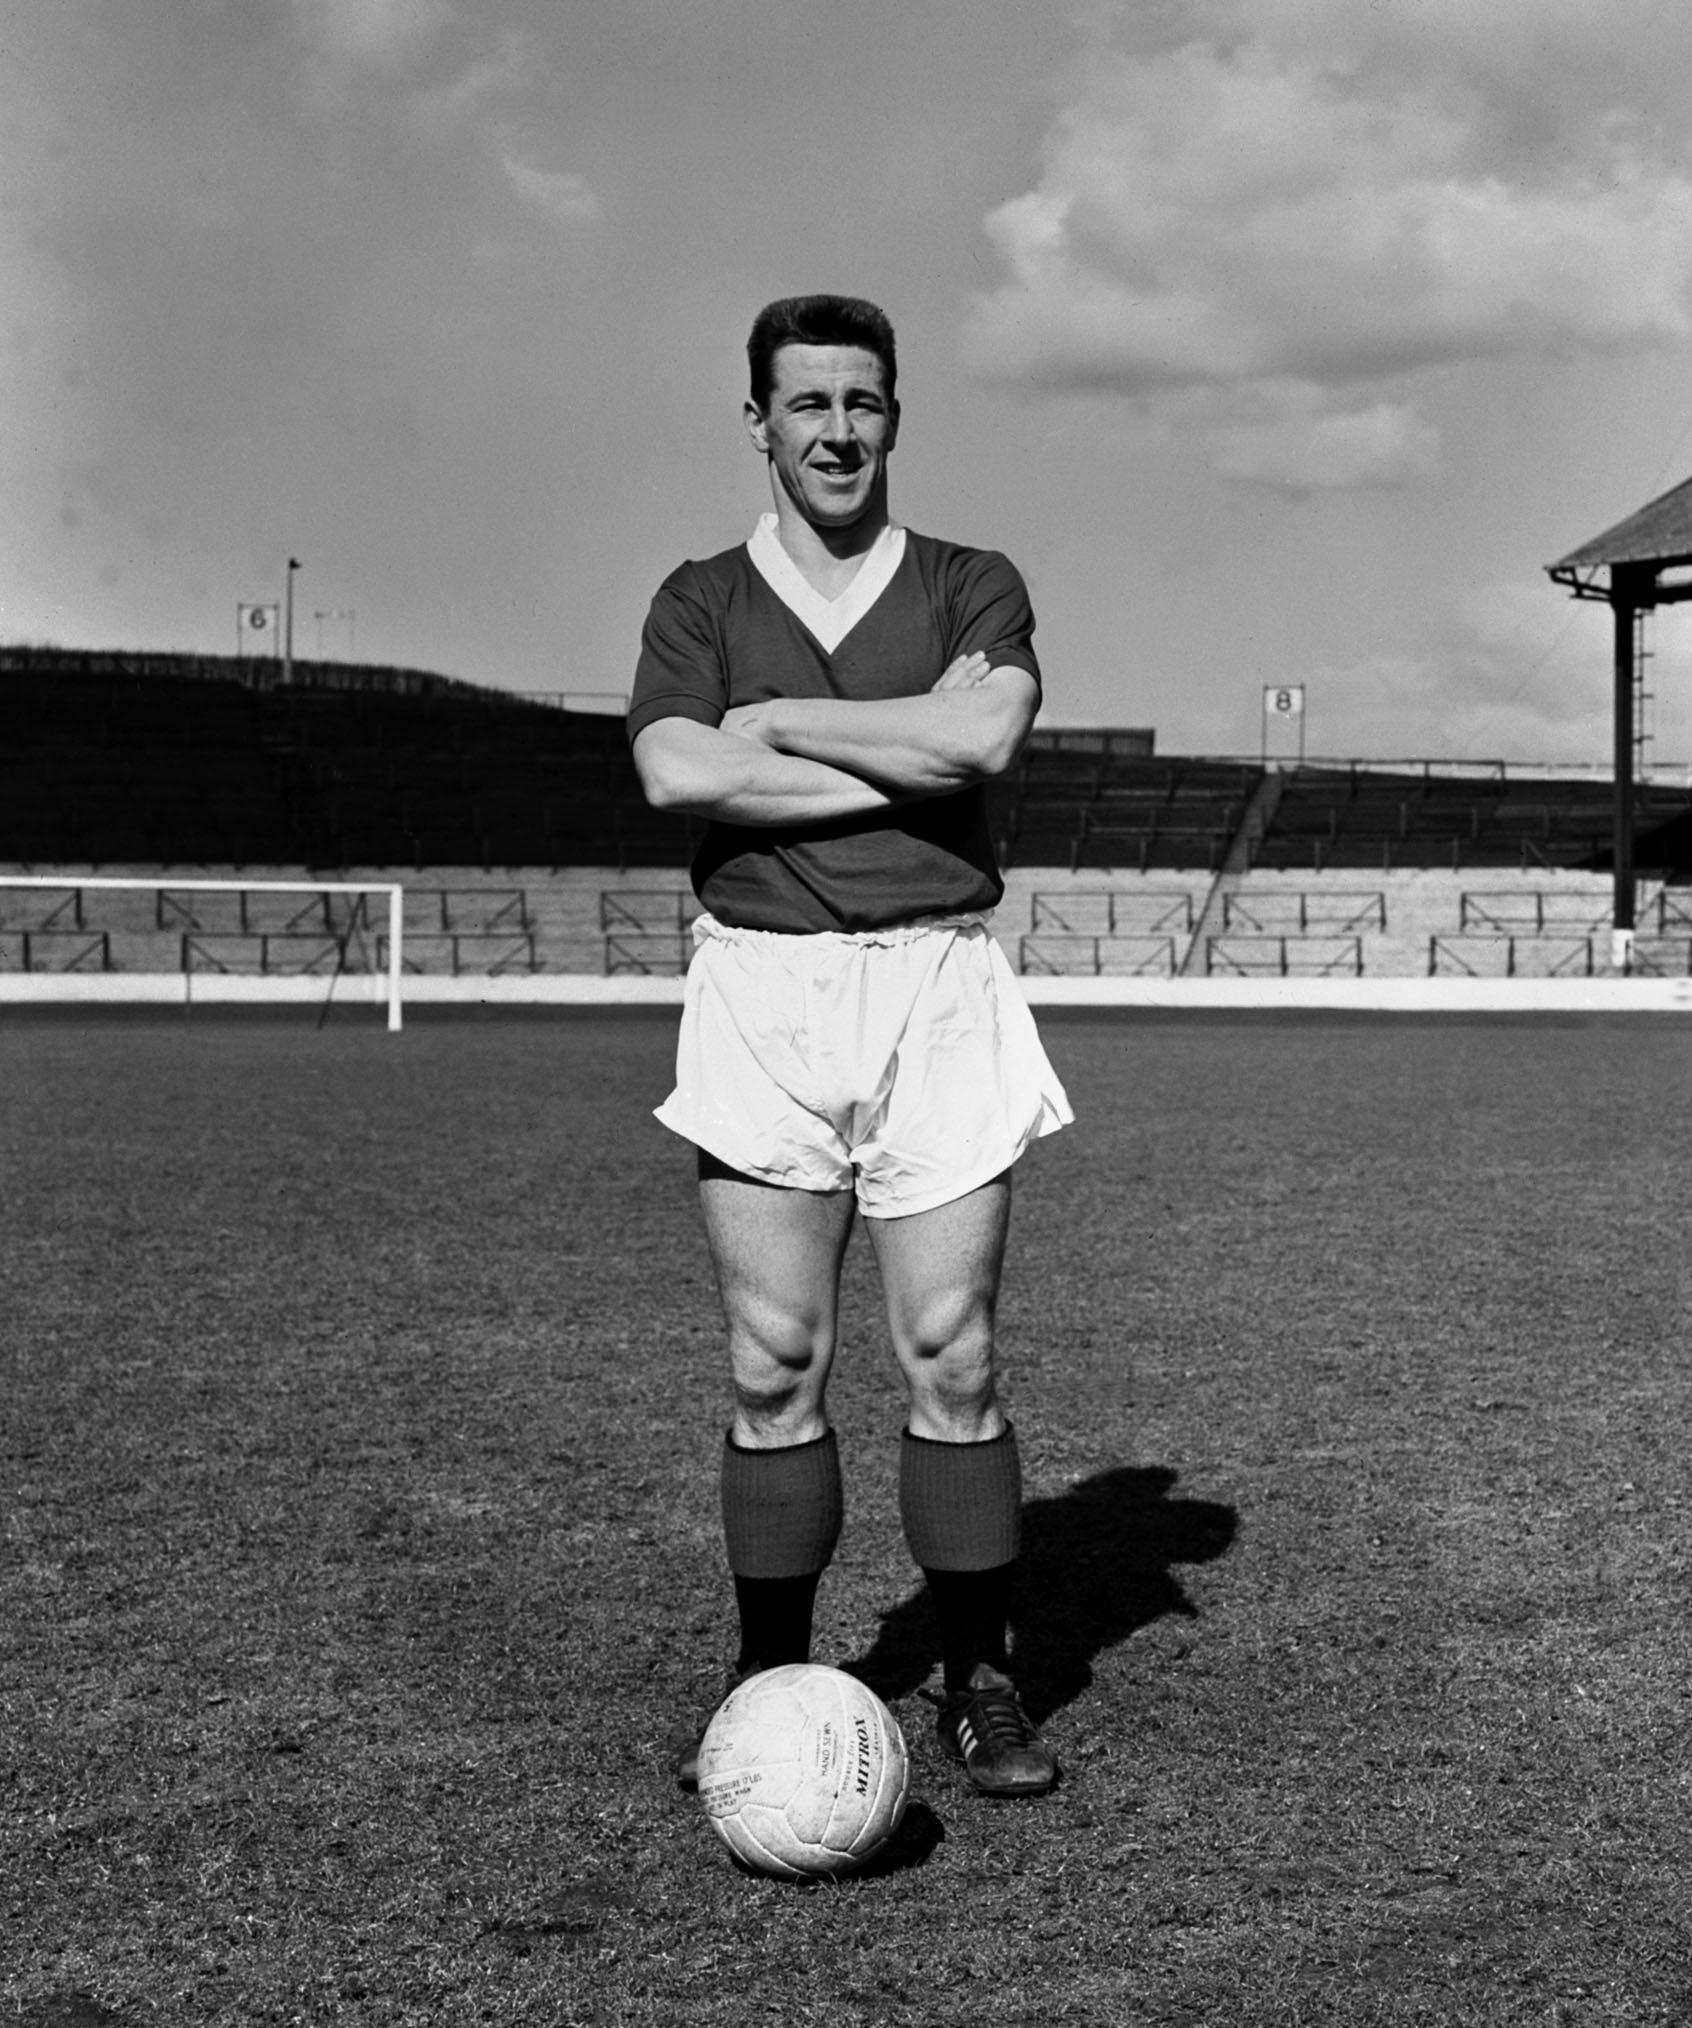 Jimmy Millar of Rangers in the 60s. Pic: Herald and Times